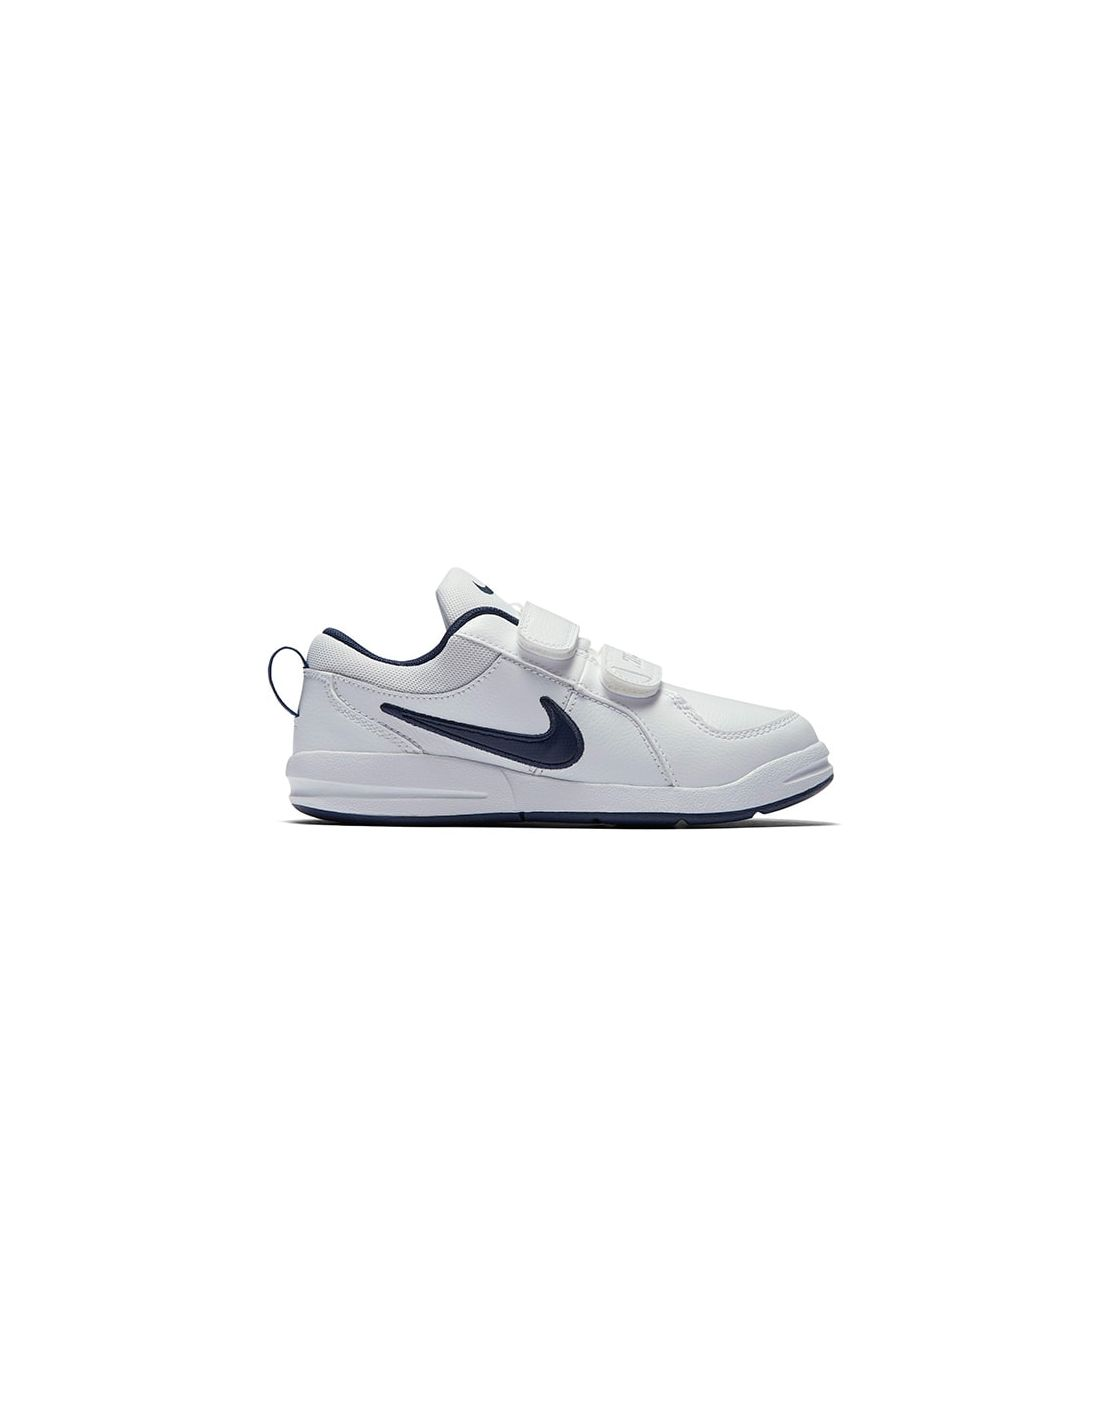 ff31e3cb0 ZAPATILLAS NIKE PICO 4 PRE-SCHOOL SHOE JUNIOR 454500-101 - Oferta ...